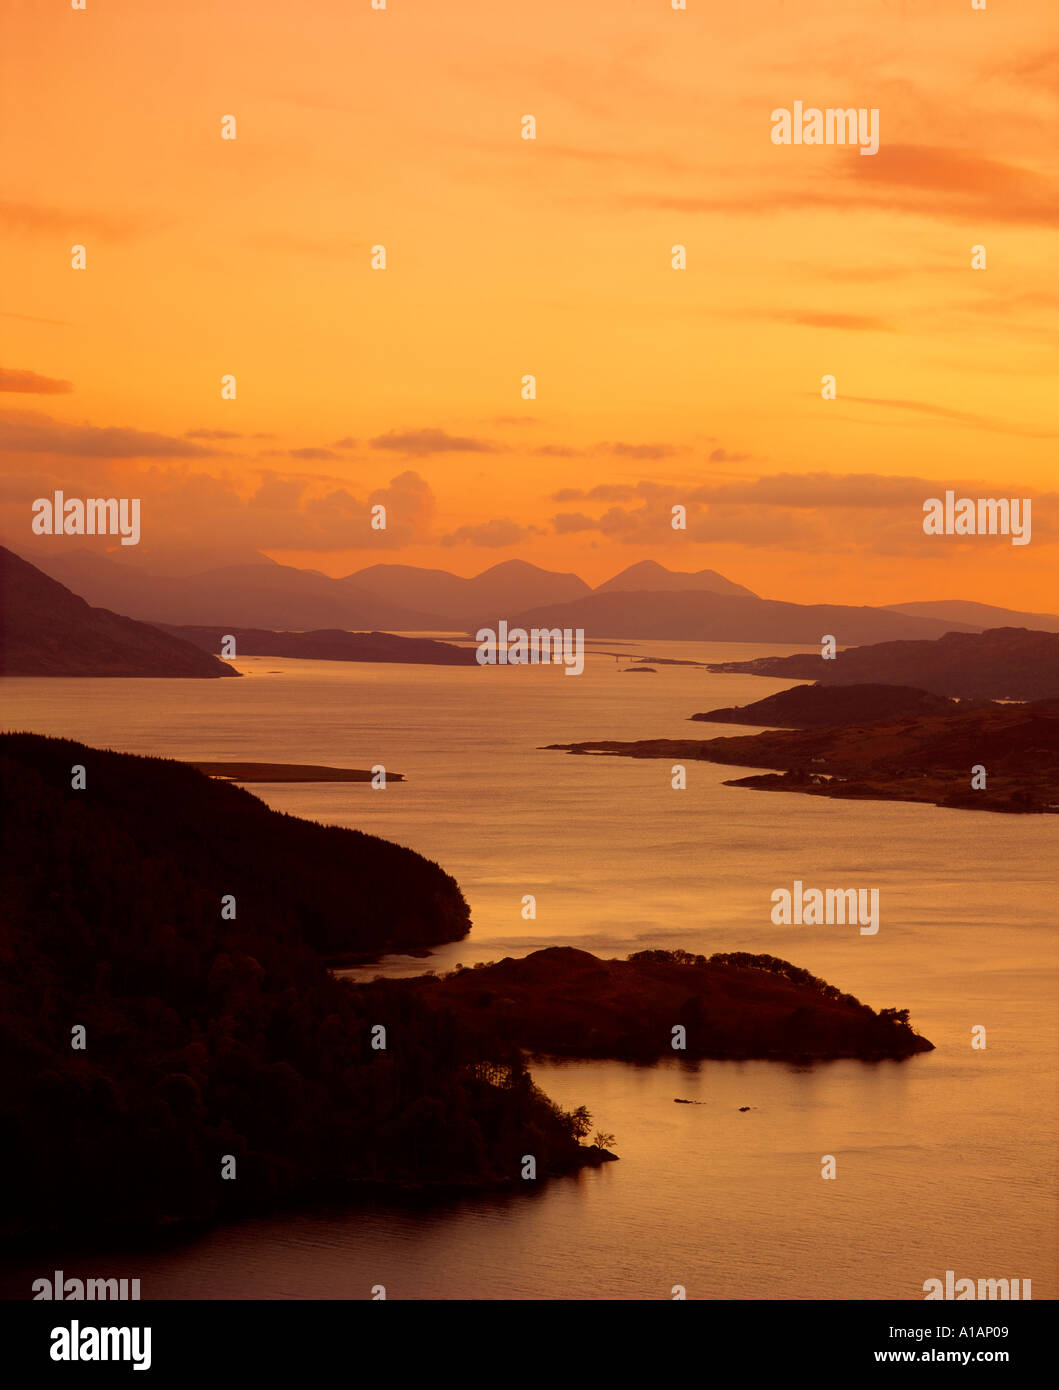 Loch Alsh et l'île de Skye de Carr Brae au crépuscule, Highland, Scotland, UK Photo Stock